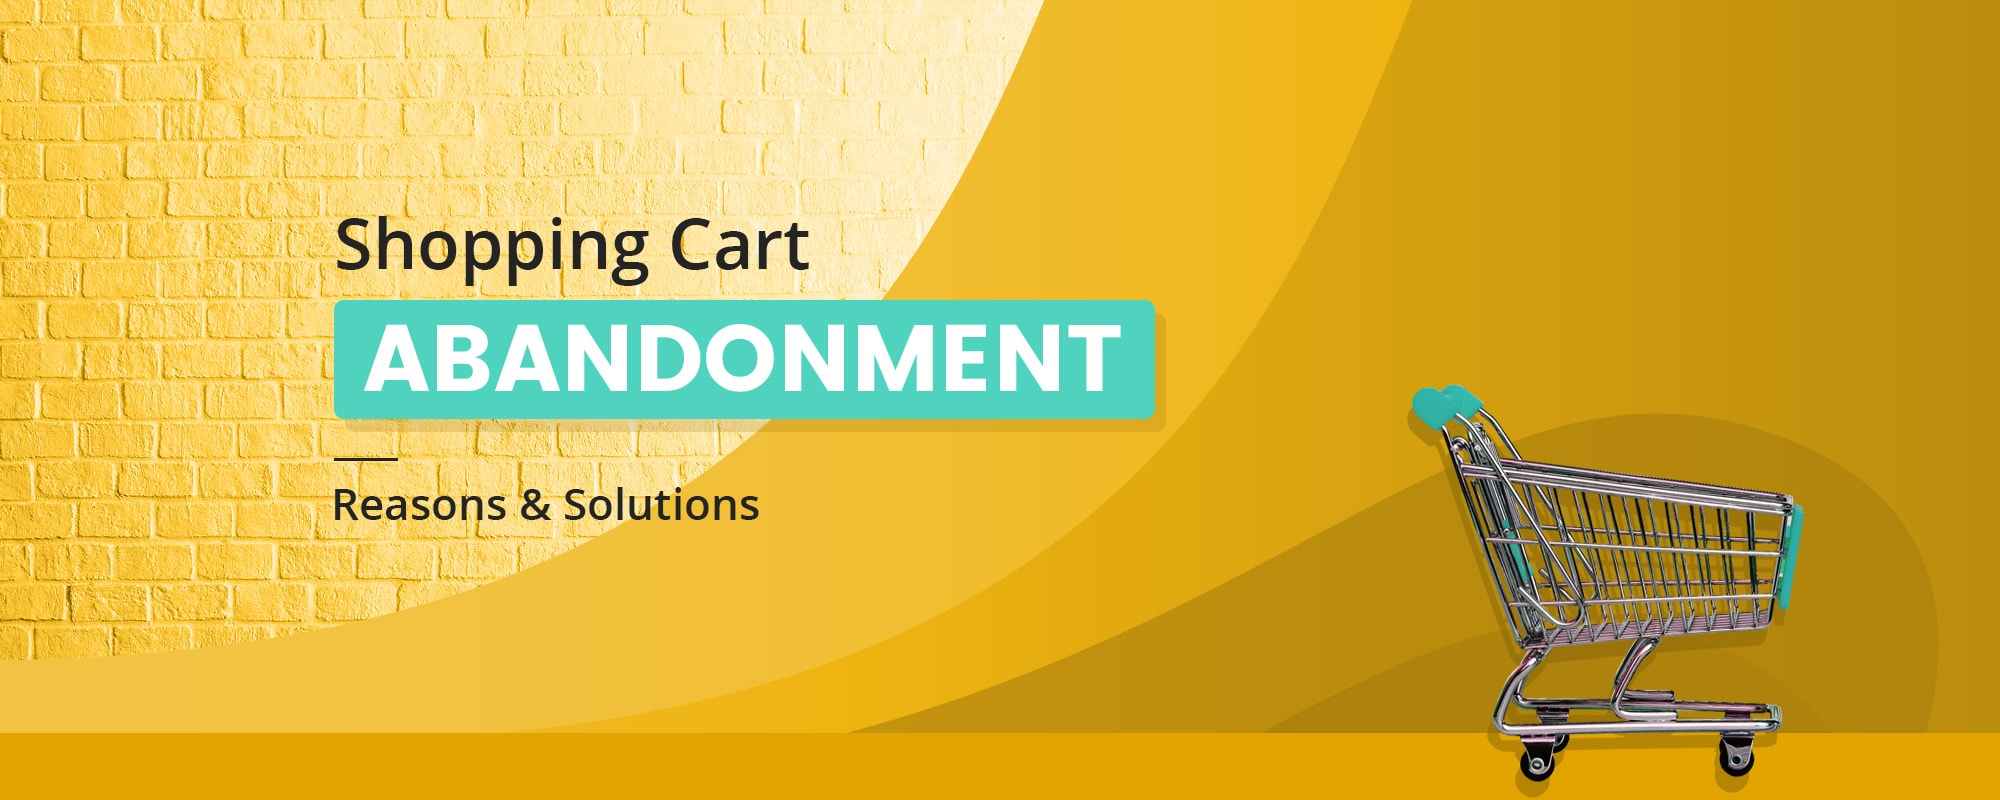 5 Reasons Behind High Shopping Cart Abandonment Rate (with Solution)